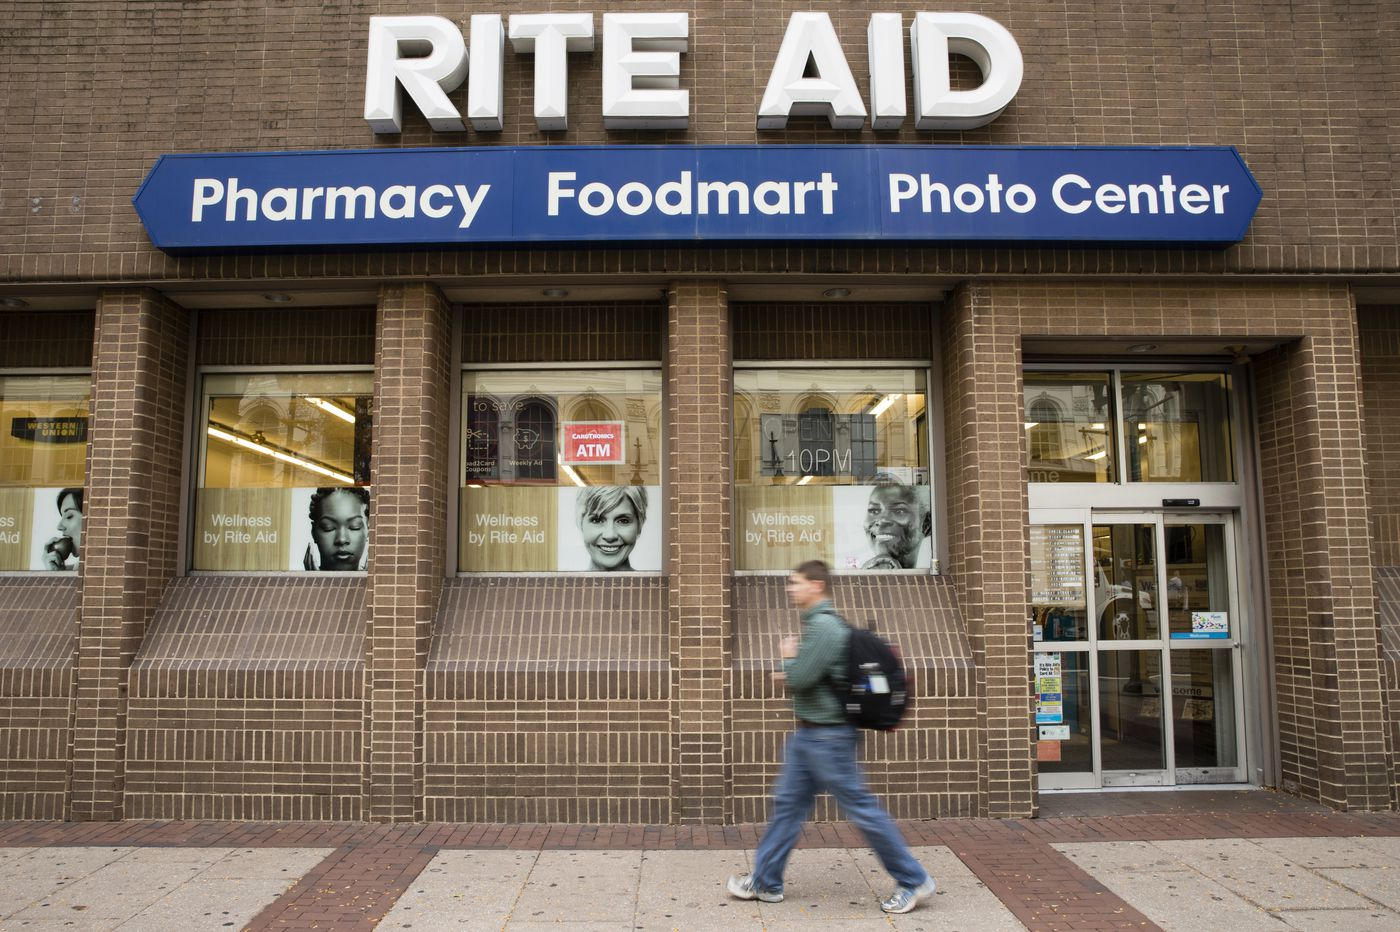 SEC charges Rite Aid exec from Marlton with insider sales of over $650,000